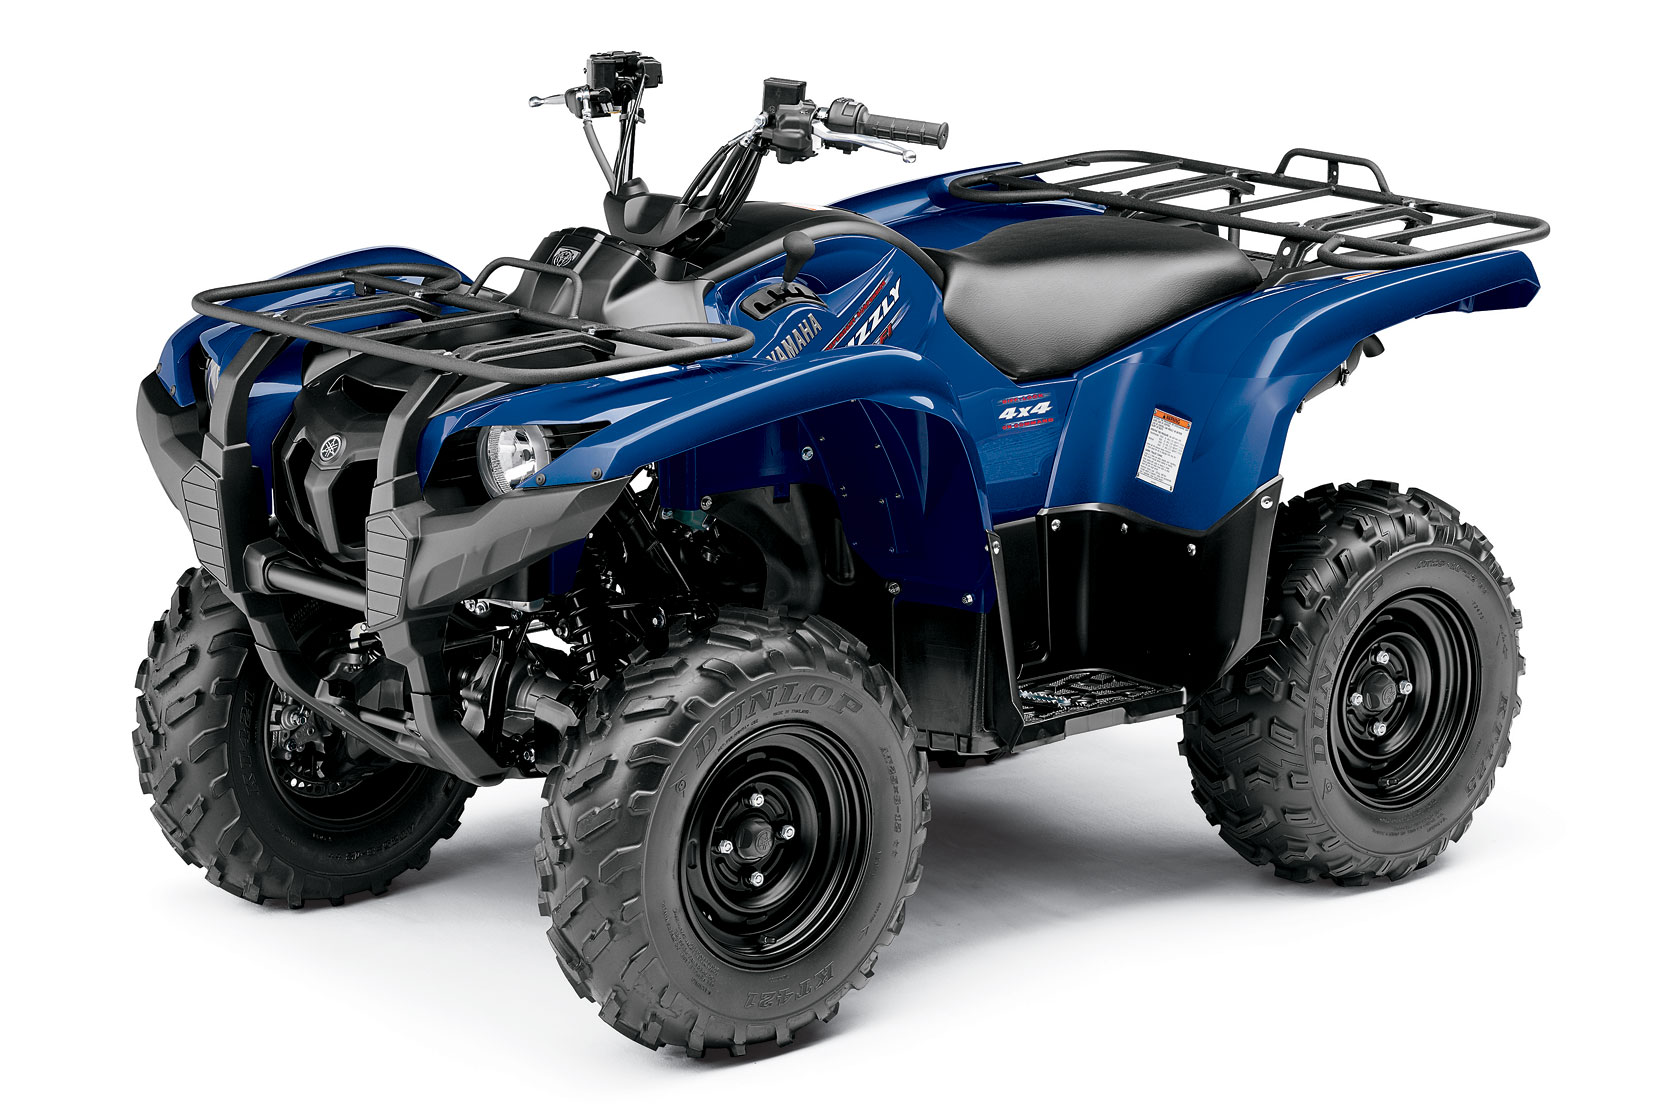 2010 yamaha grizzly 550 fi for Yamaha grizzly atv